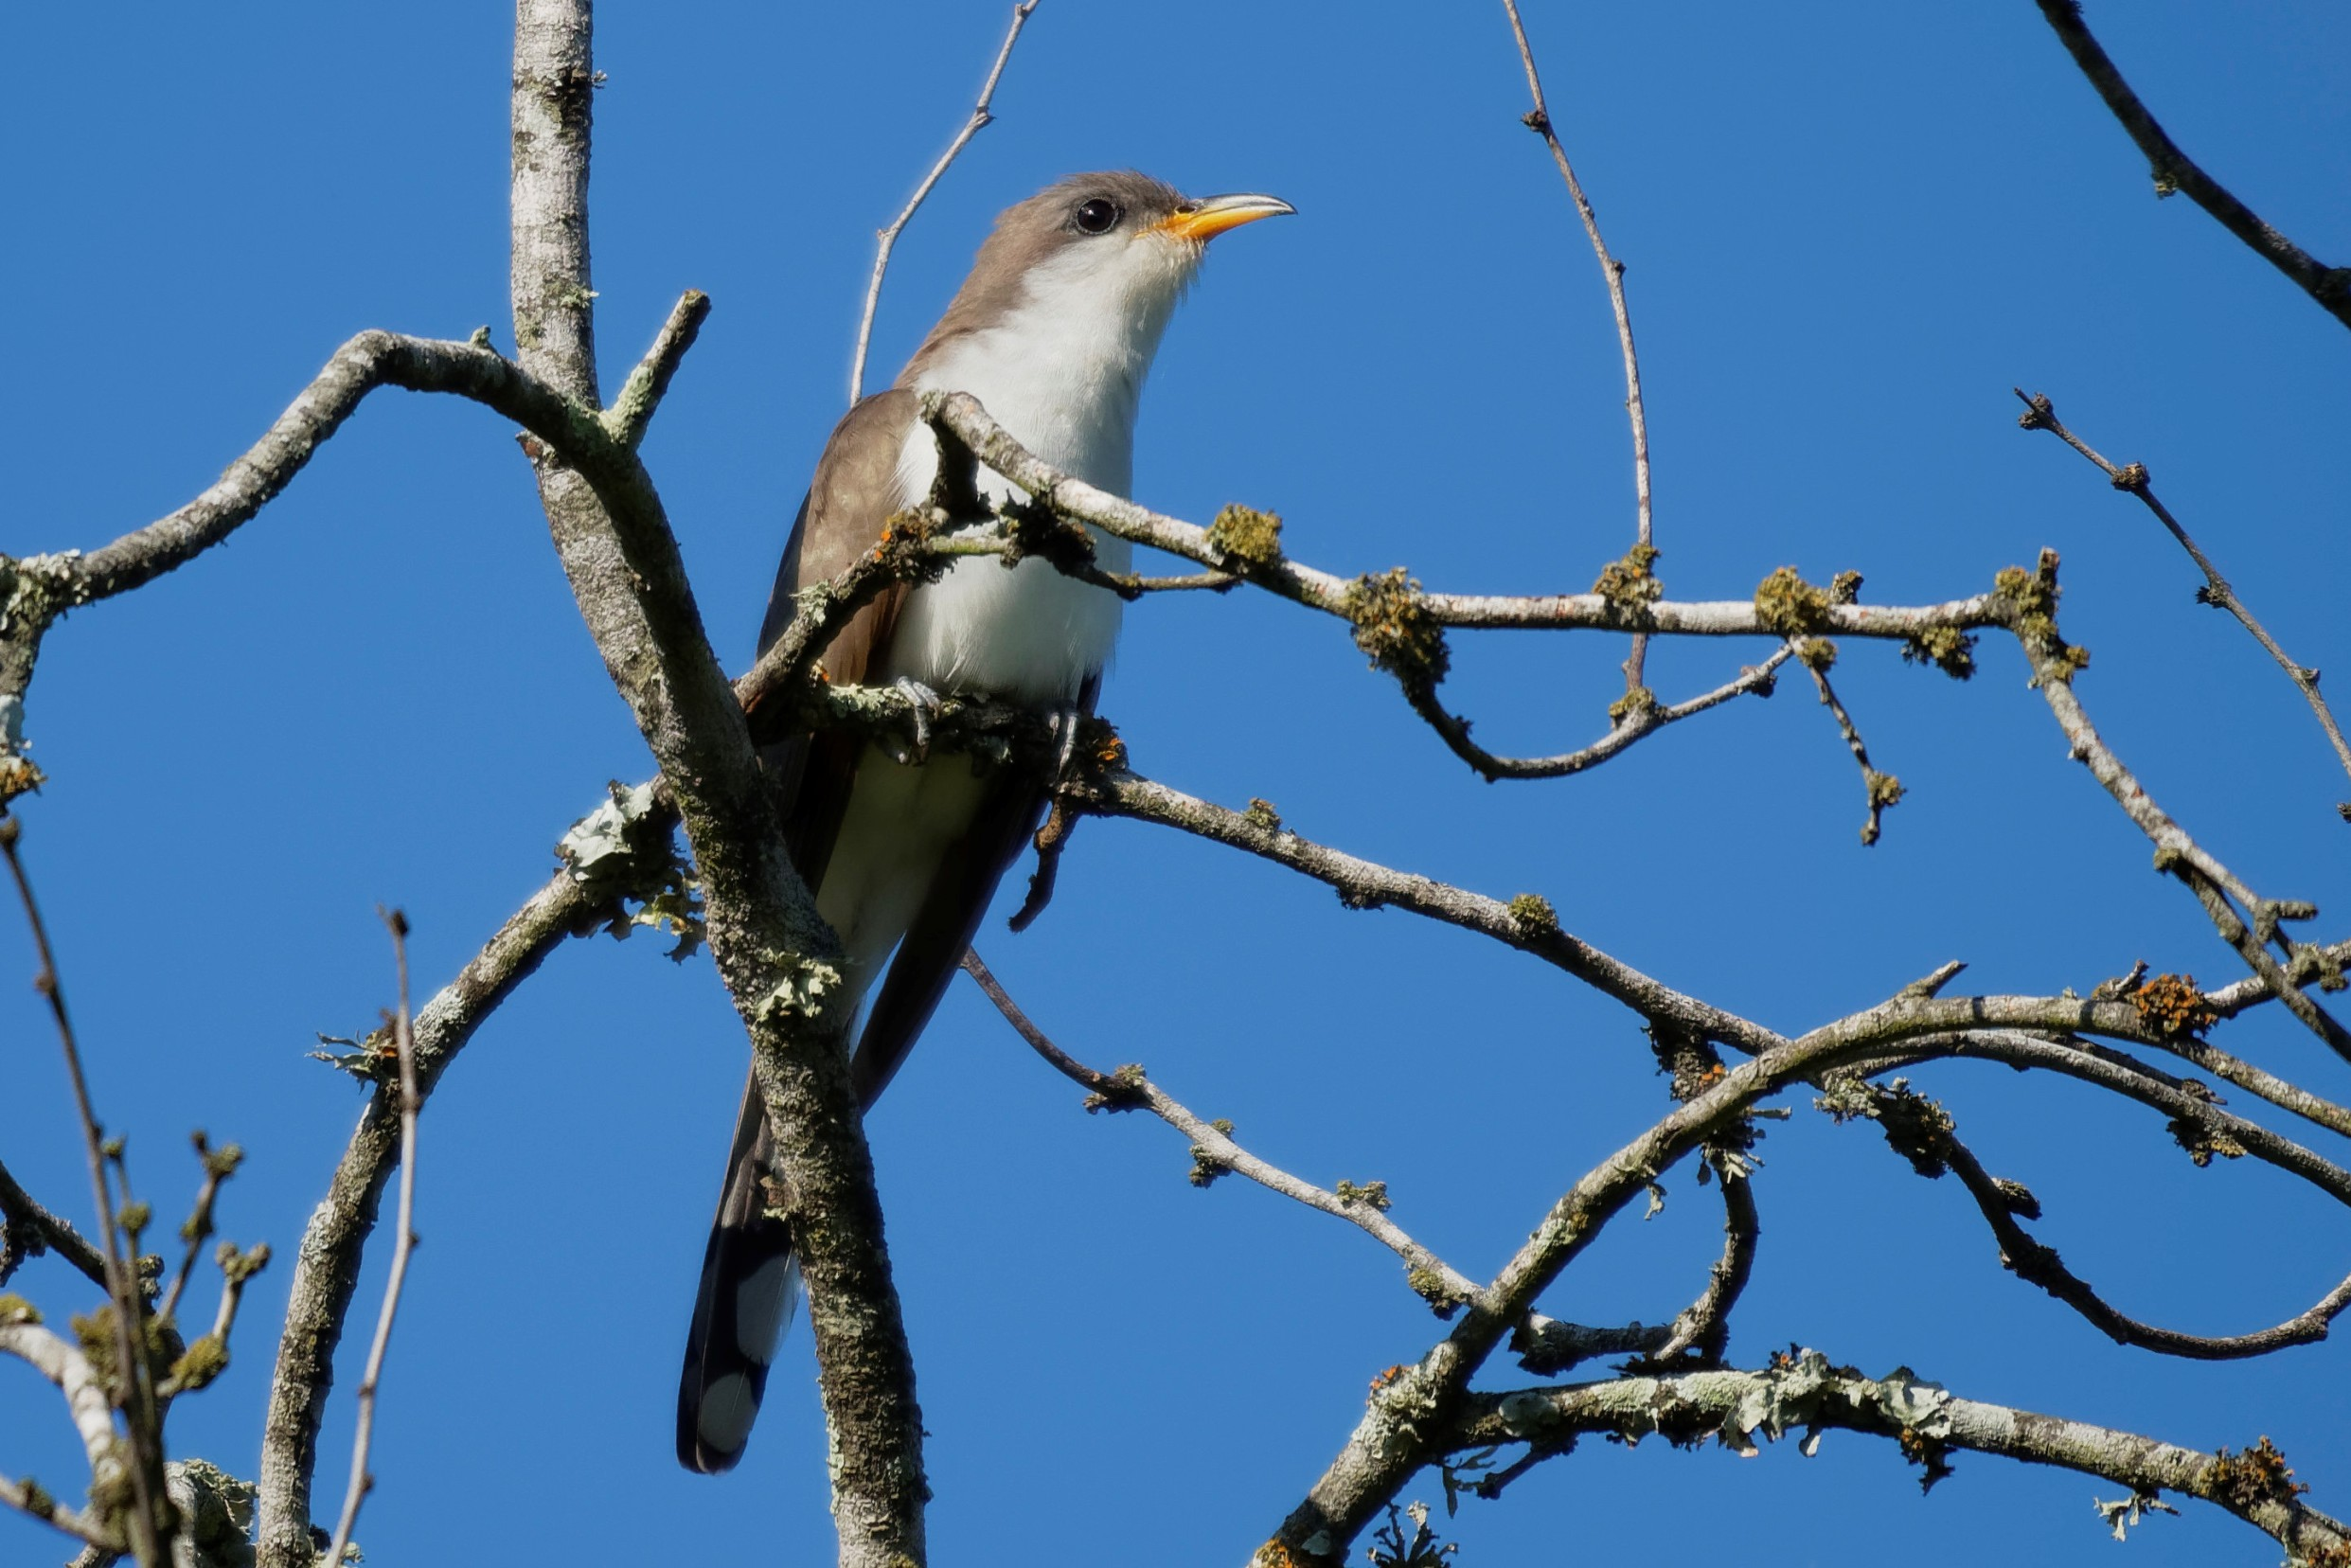 Species: Yellow-billed Cuckoo Photo Credit: Dina Perry Date: May 2018 Location: Crescent Bend Nature Park